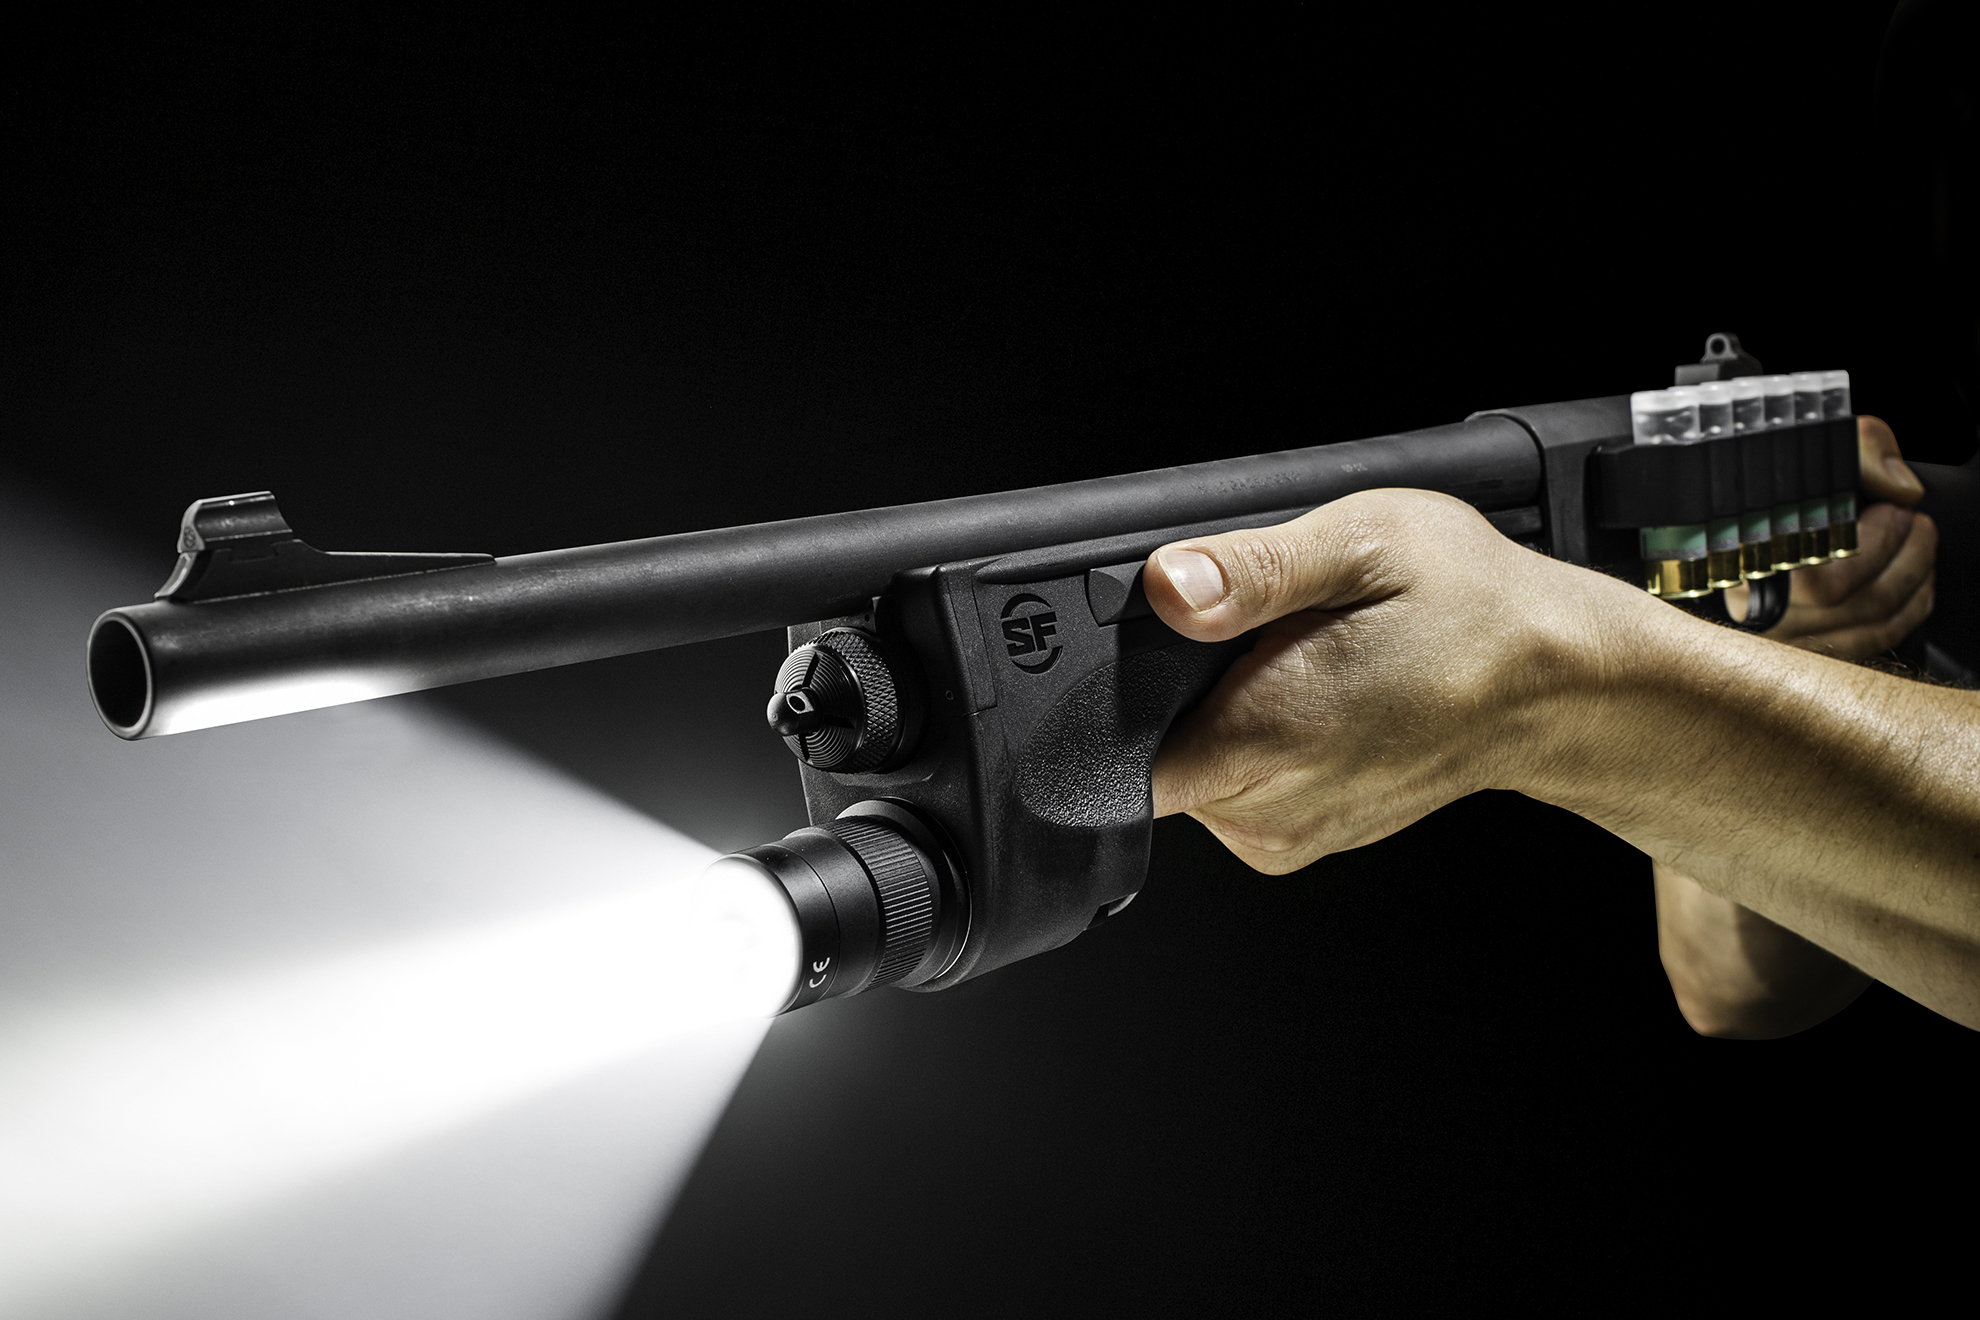 SureFire DSF-870 shotgun forend WeaponLight in use